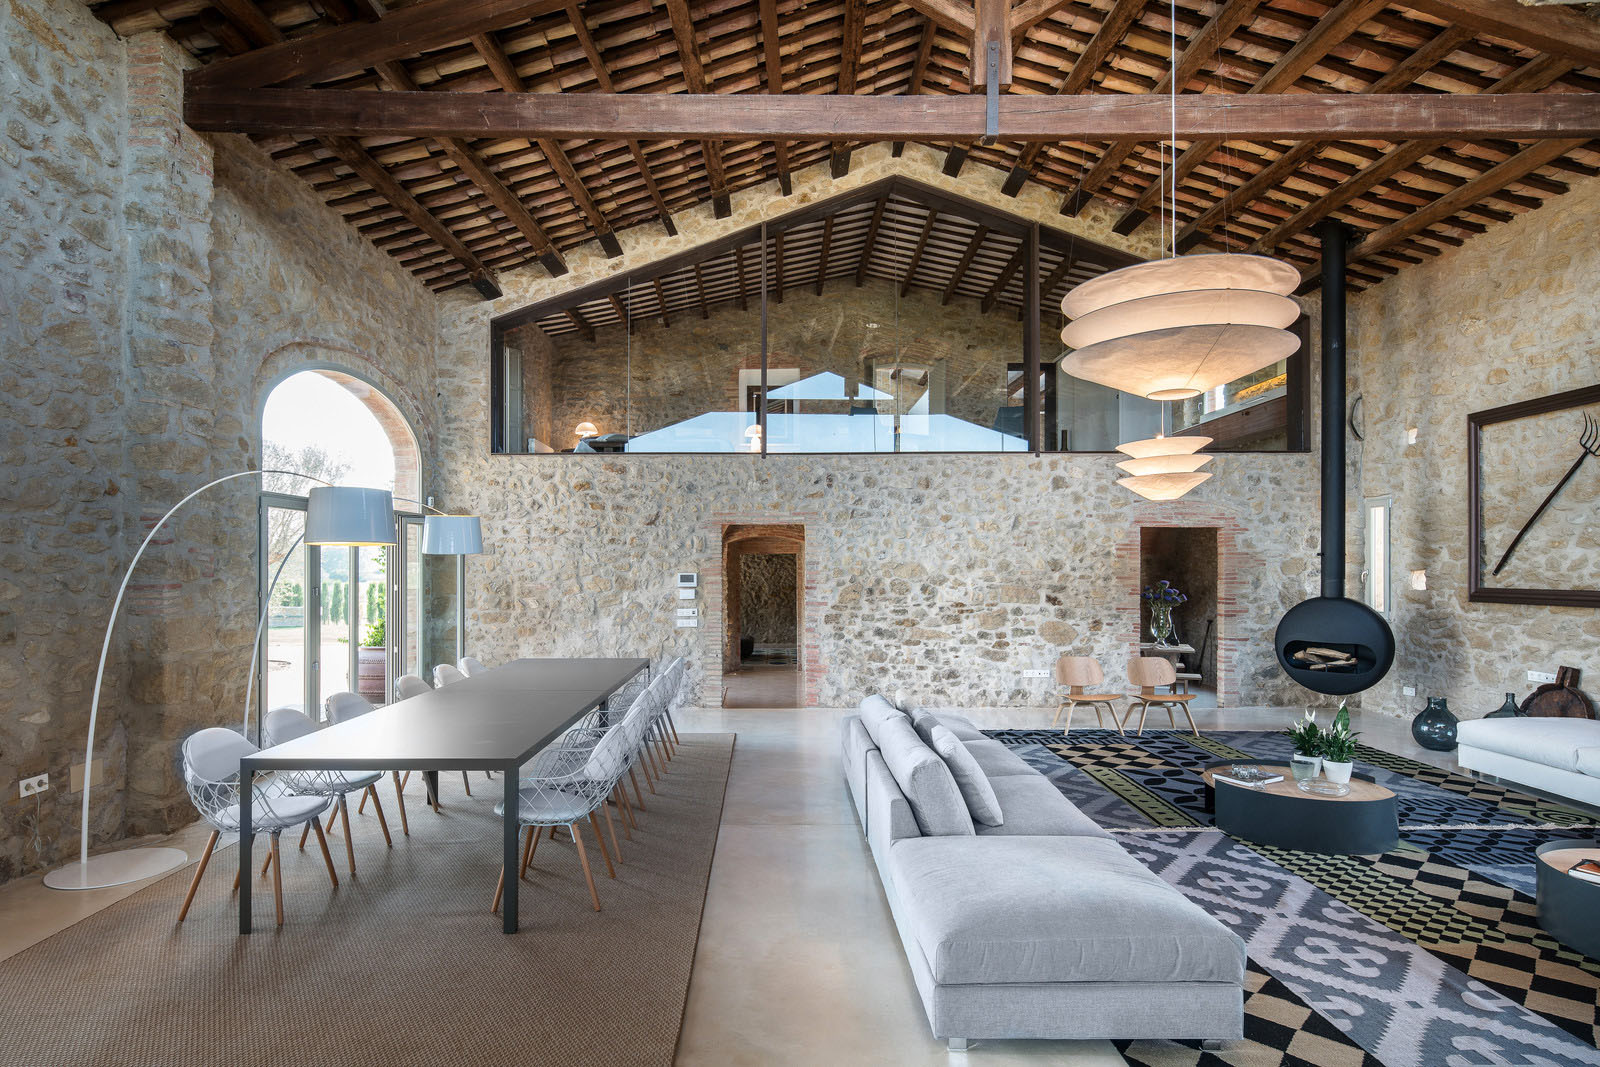 An ancient stone manor transformed into a rustic for Mediterranean stone houses